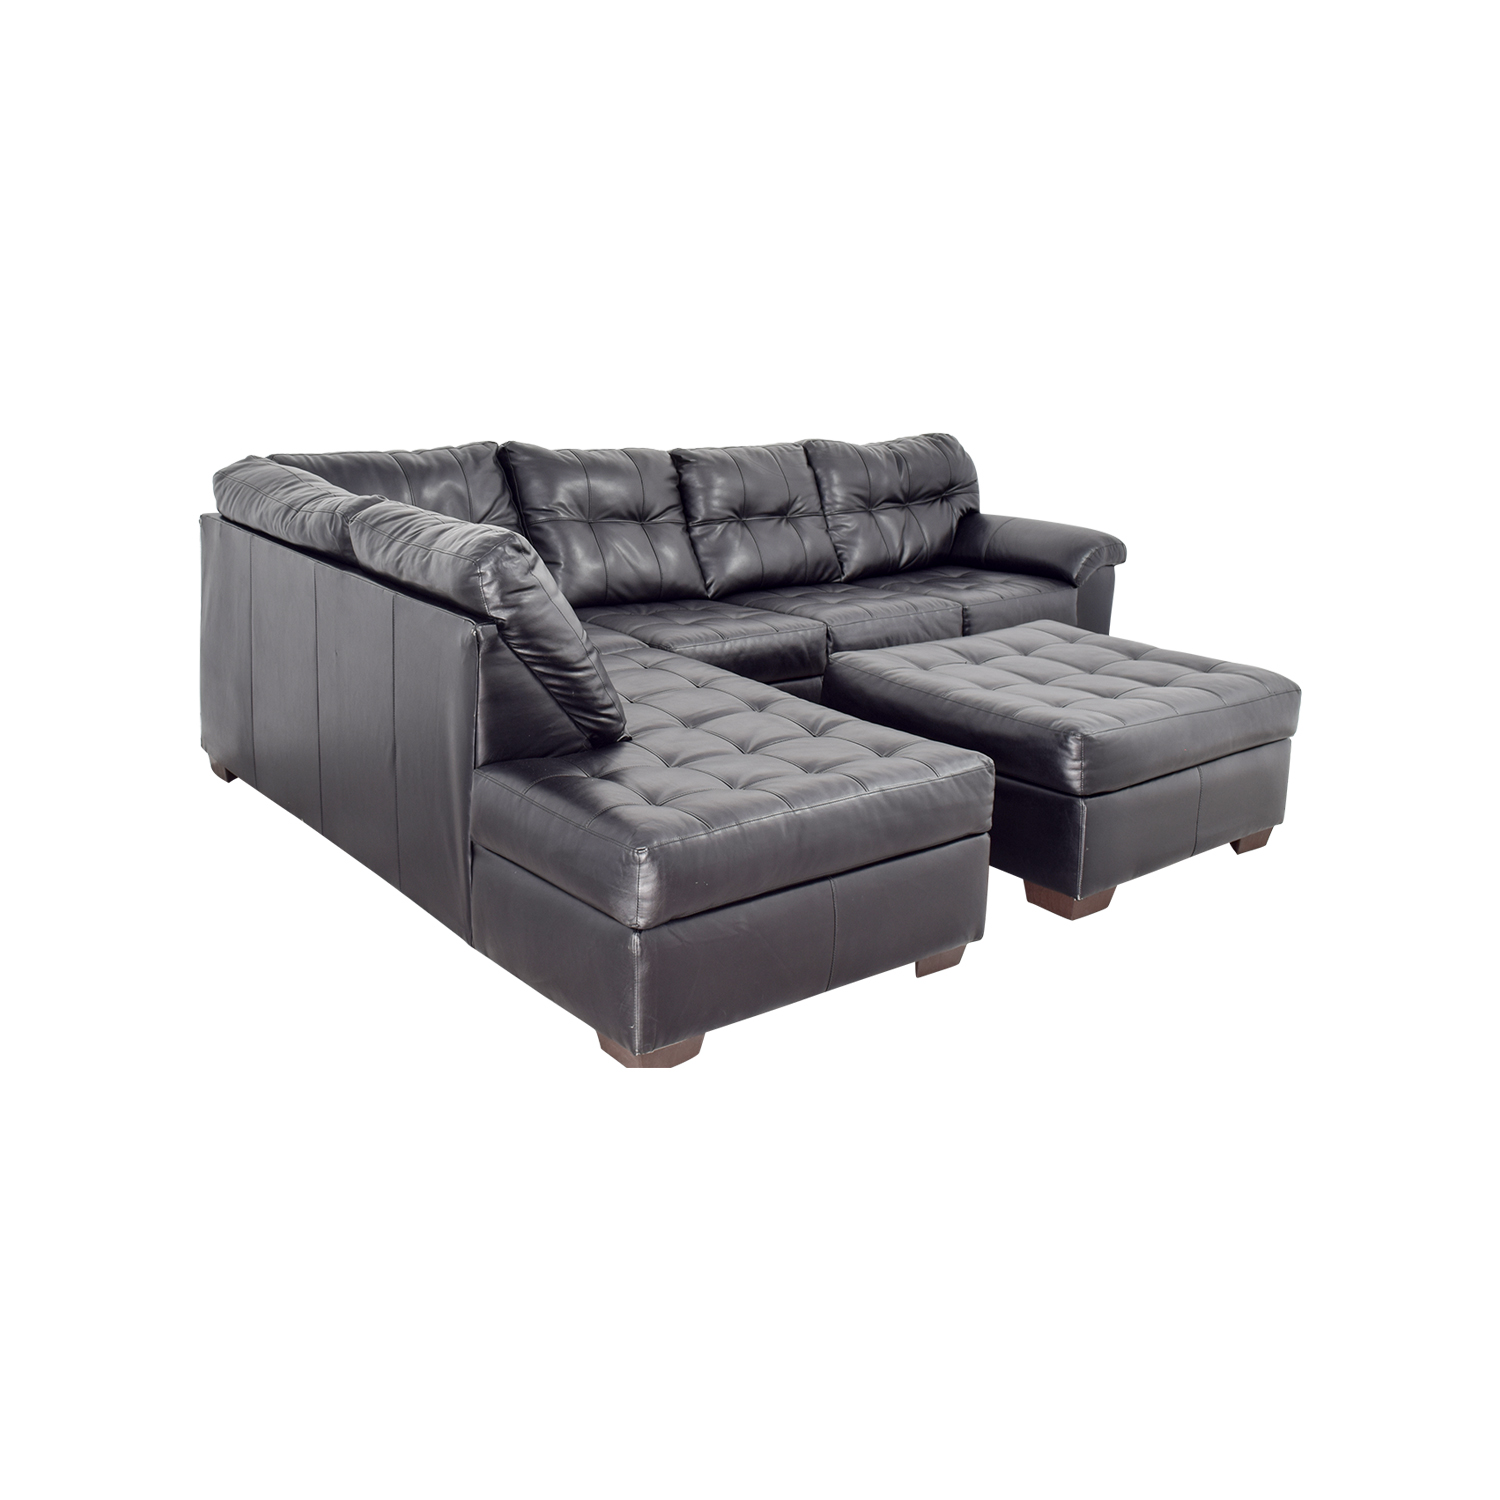 Shop Black Leather Tufted Sectional Sofa And Ottoman Sofas